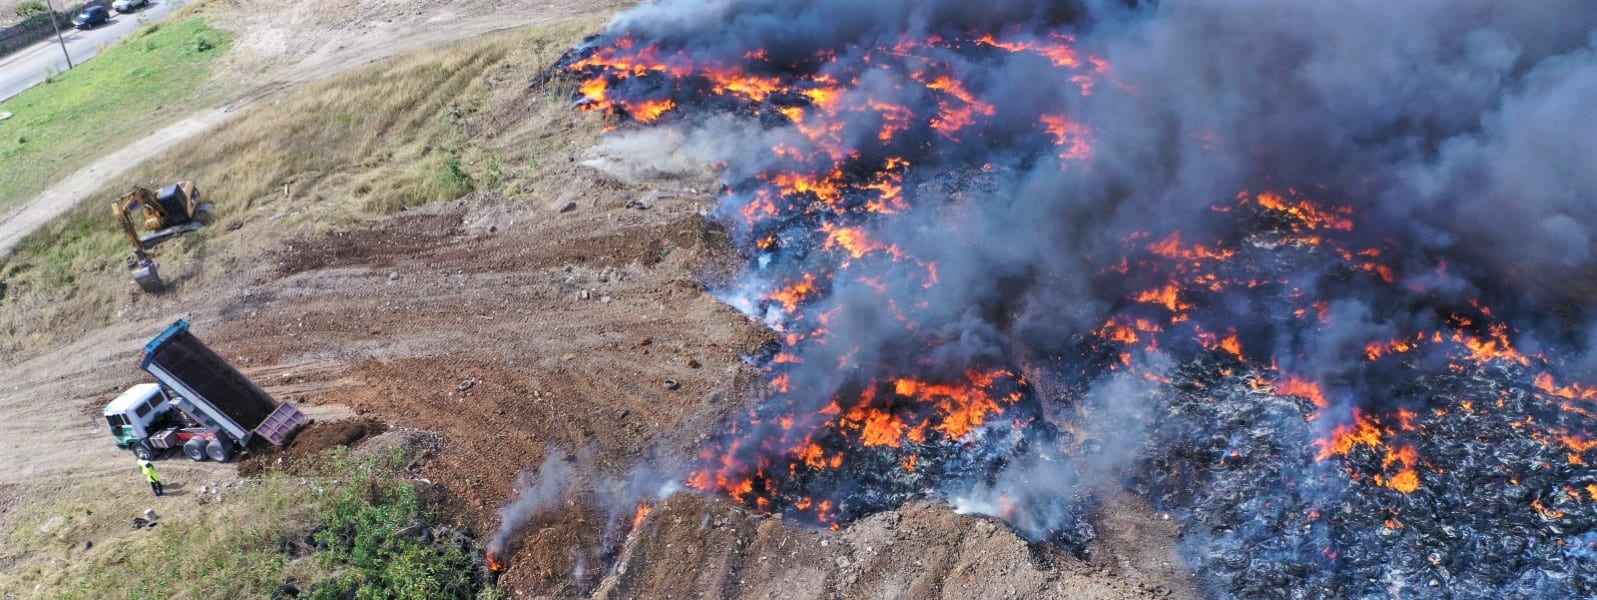 Fire At Mangrove Pond Landfill Under Control